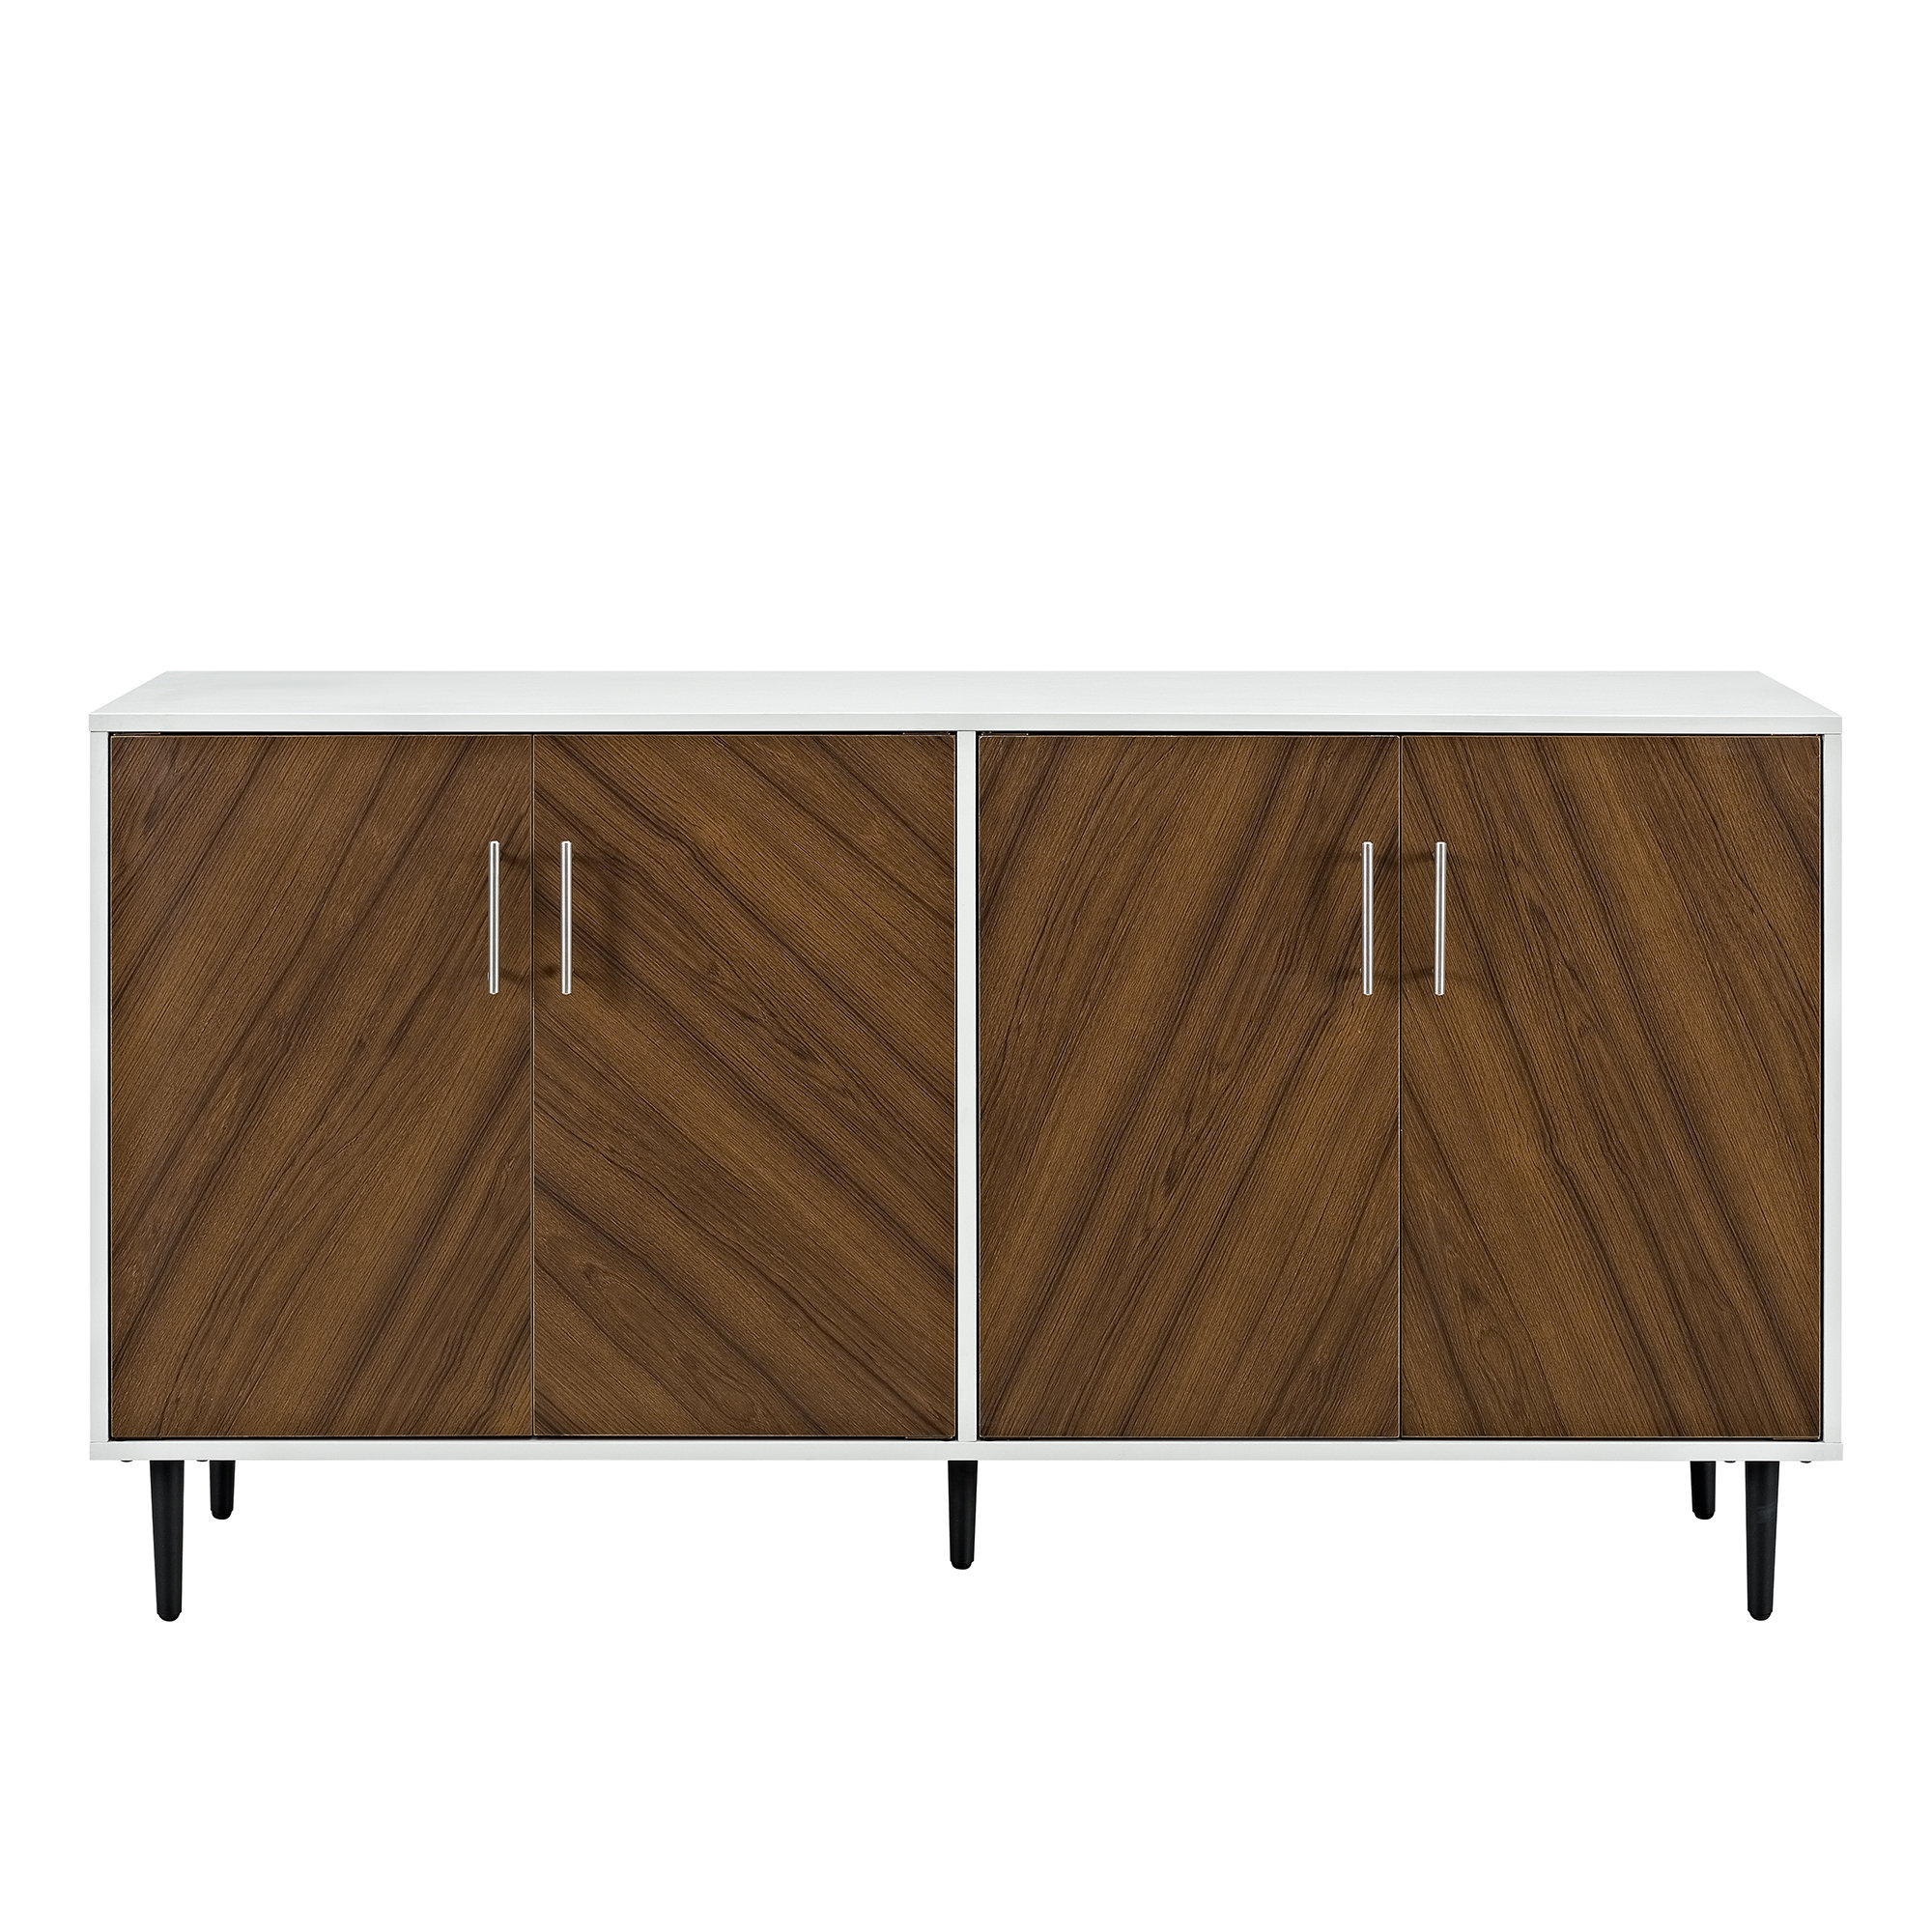 Modern & Contemporary Kitchen Sideboard   Allmodern With Regard To Dowler 2 Drawer Sideboards (View 14 of 20)